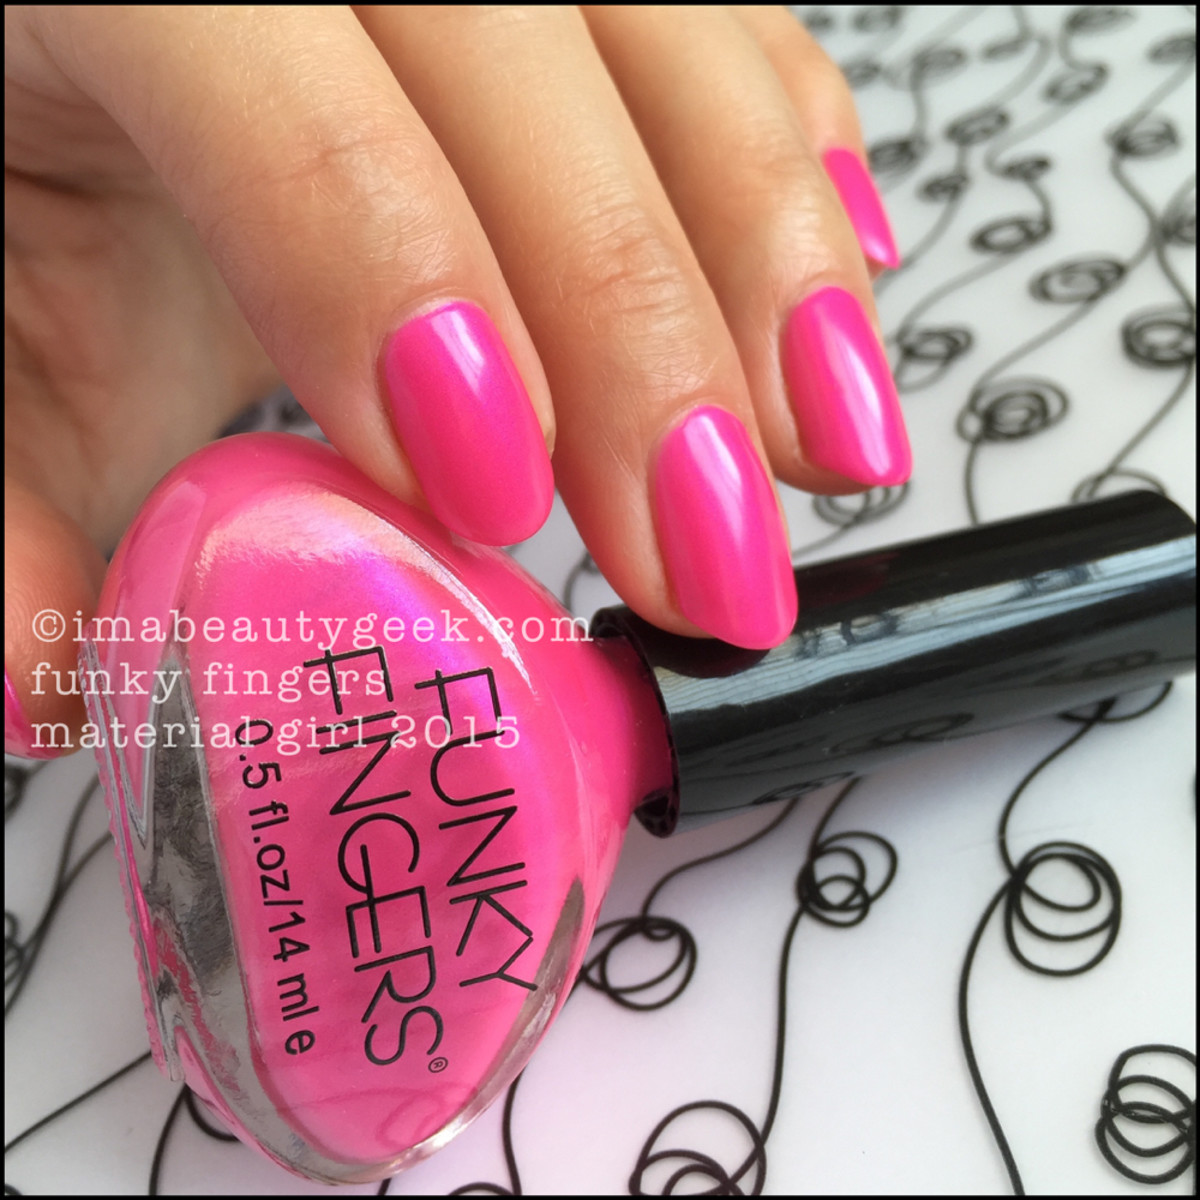 Funky Fingers Material Girl Swatch Beautygeeks _2